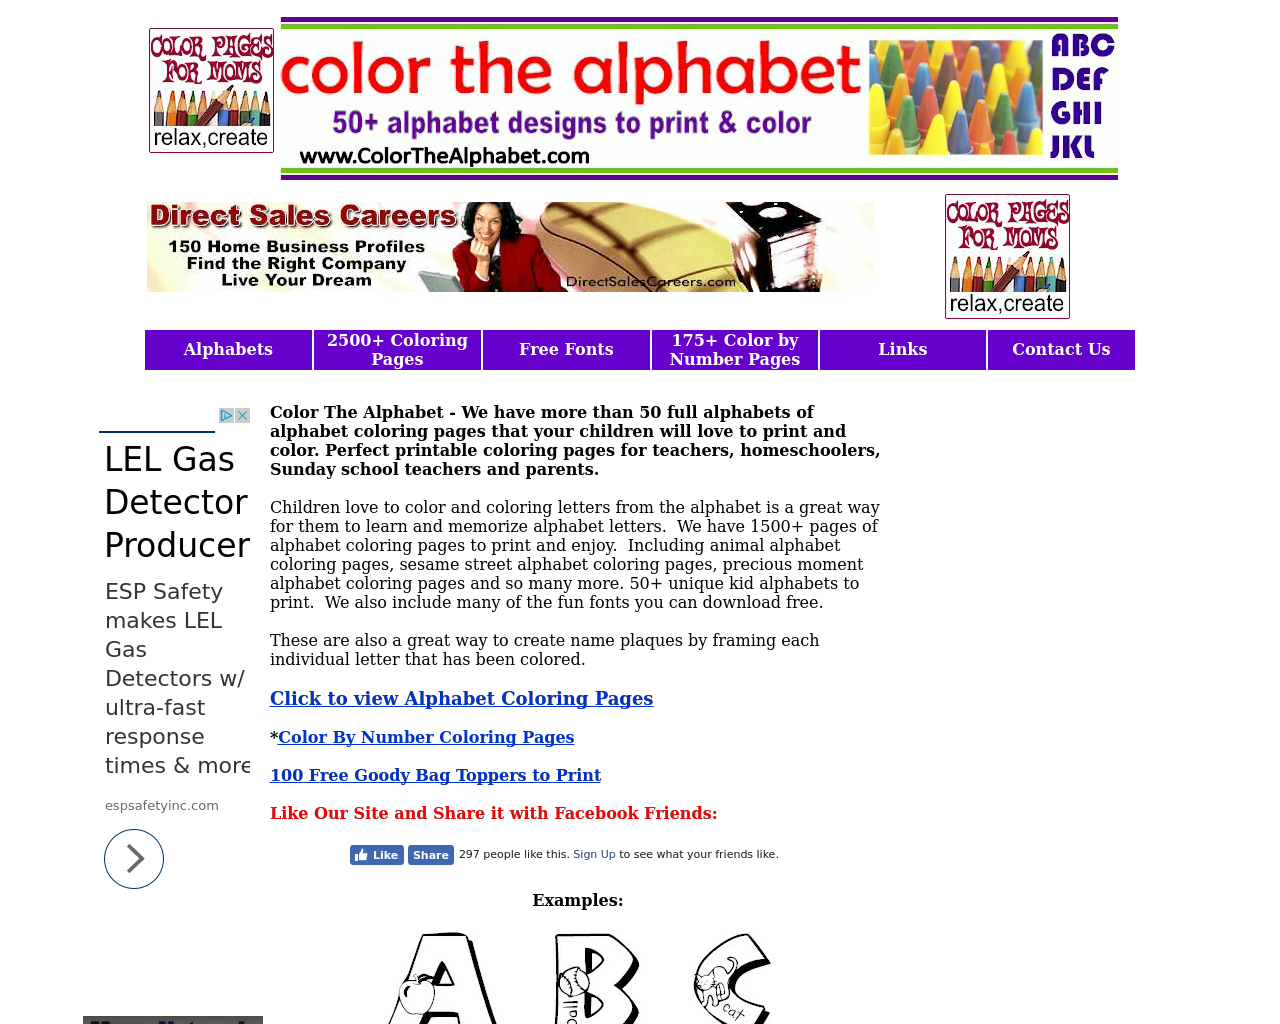 Color-The-Alphabet-Advertising-Reviews-Pricing